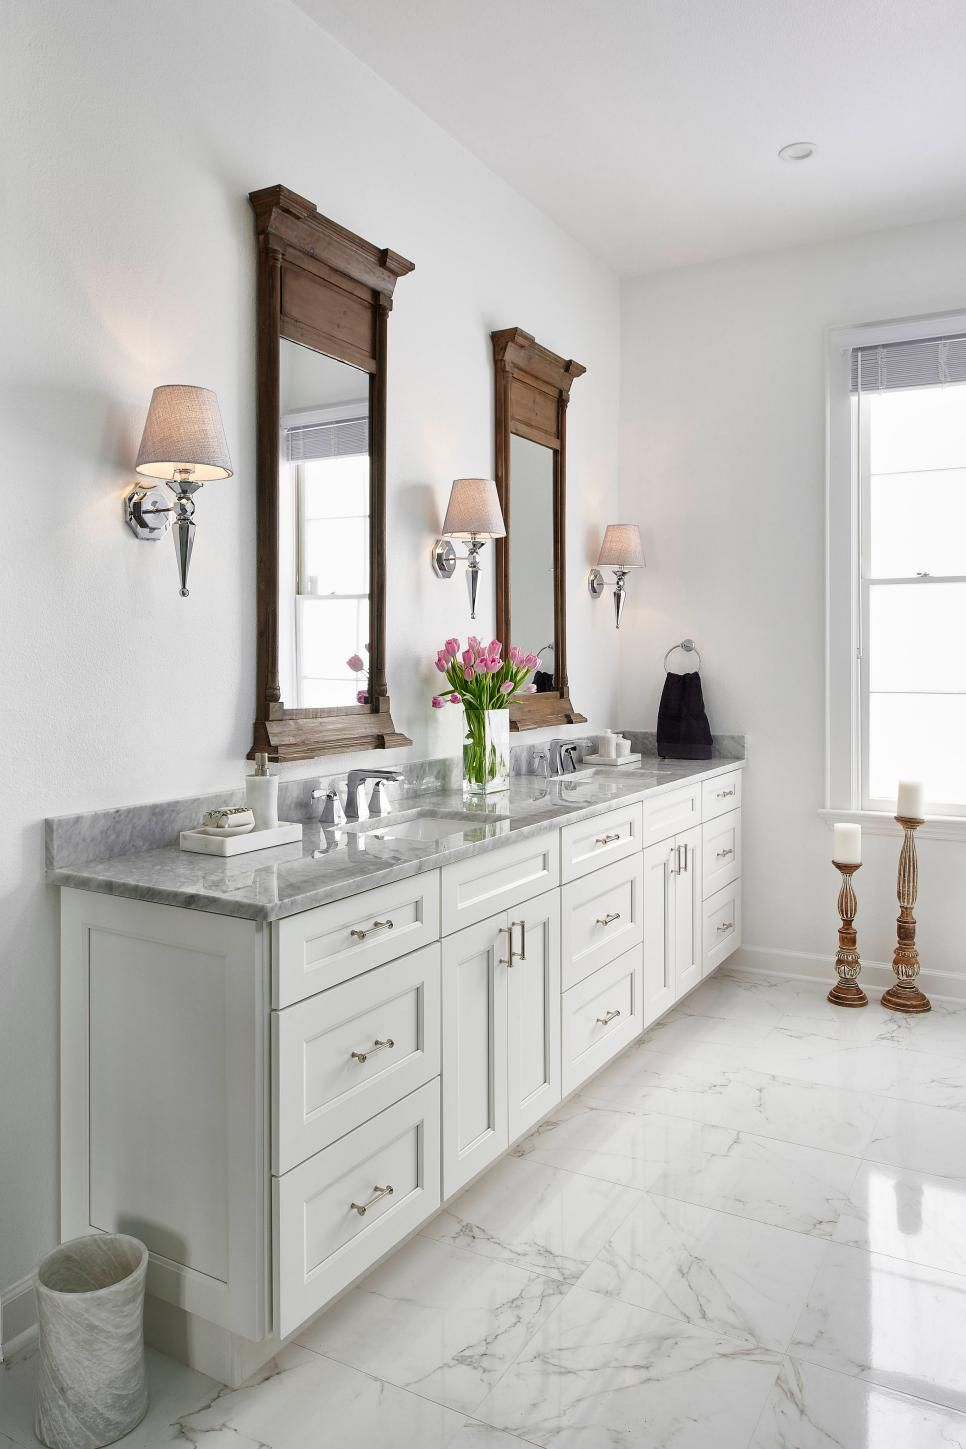 Traditional white bathroom ideas - This Traditional White Master Bathroom Features White Shaker Style Cabinetry With Carrara Marble Countertops